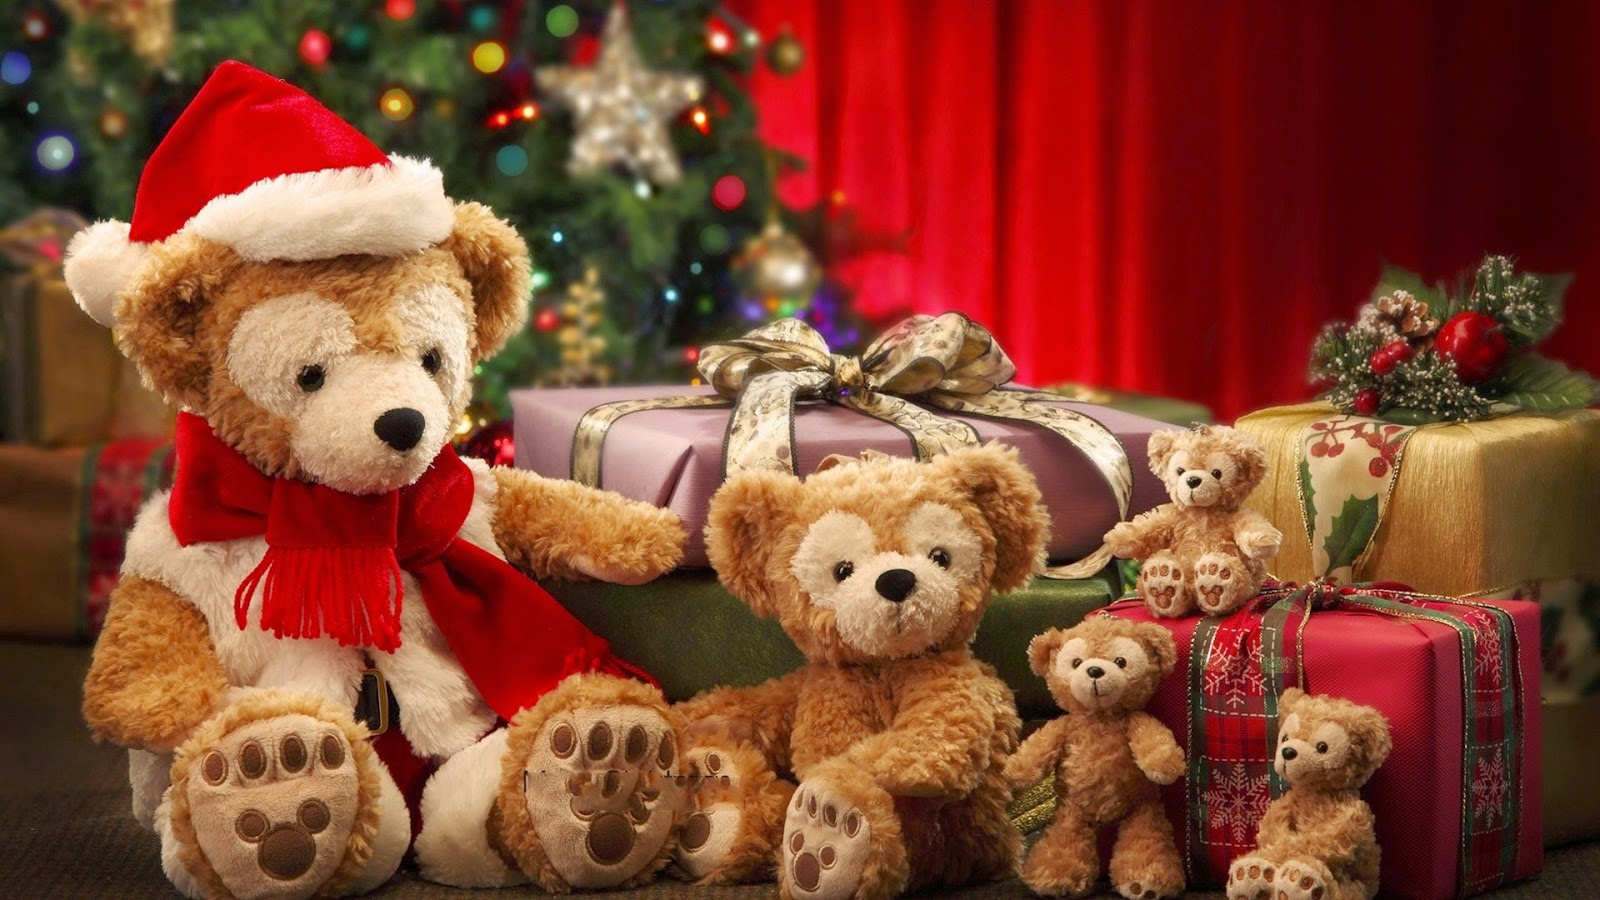 Cute-teddy-bear-with-Christmas-hat-gift-box-image-picture-wallpaper.jpg